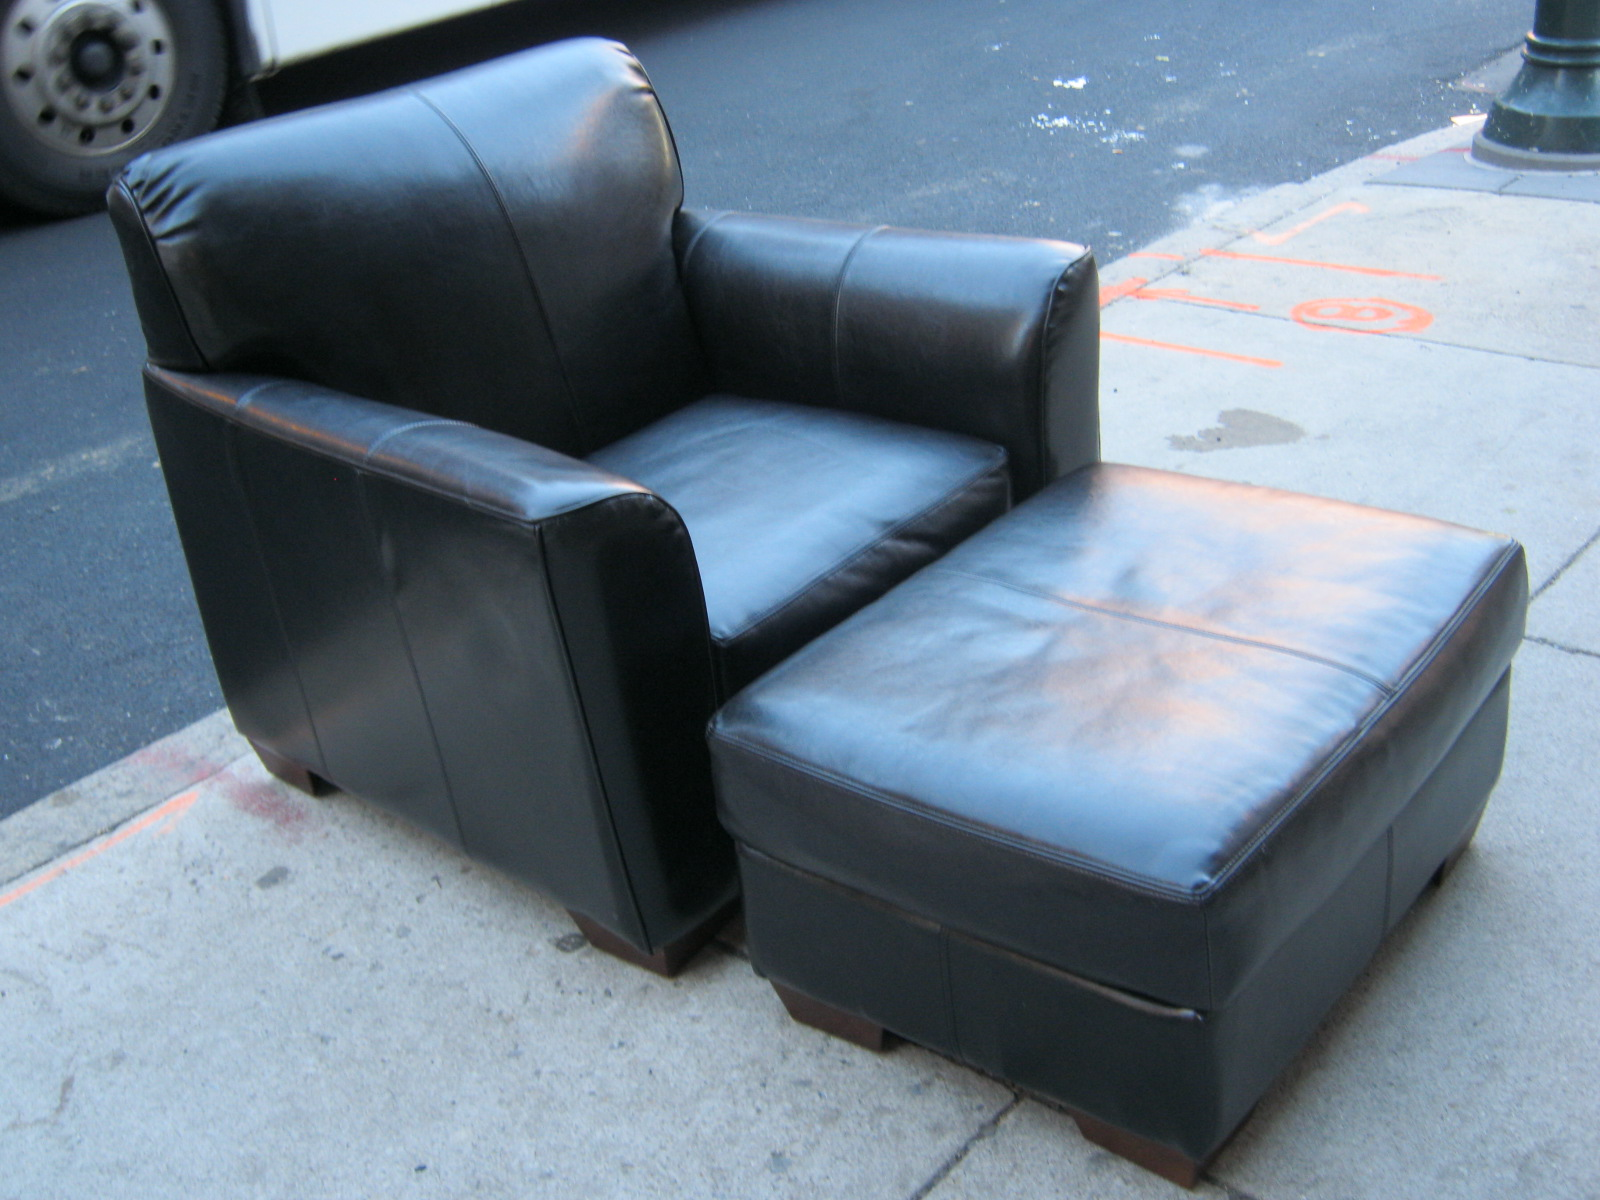 Uhuru Furniture & Collectibles: Black Leather Chair and ...